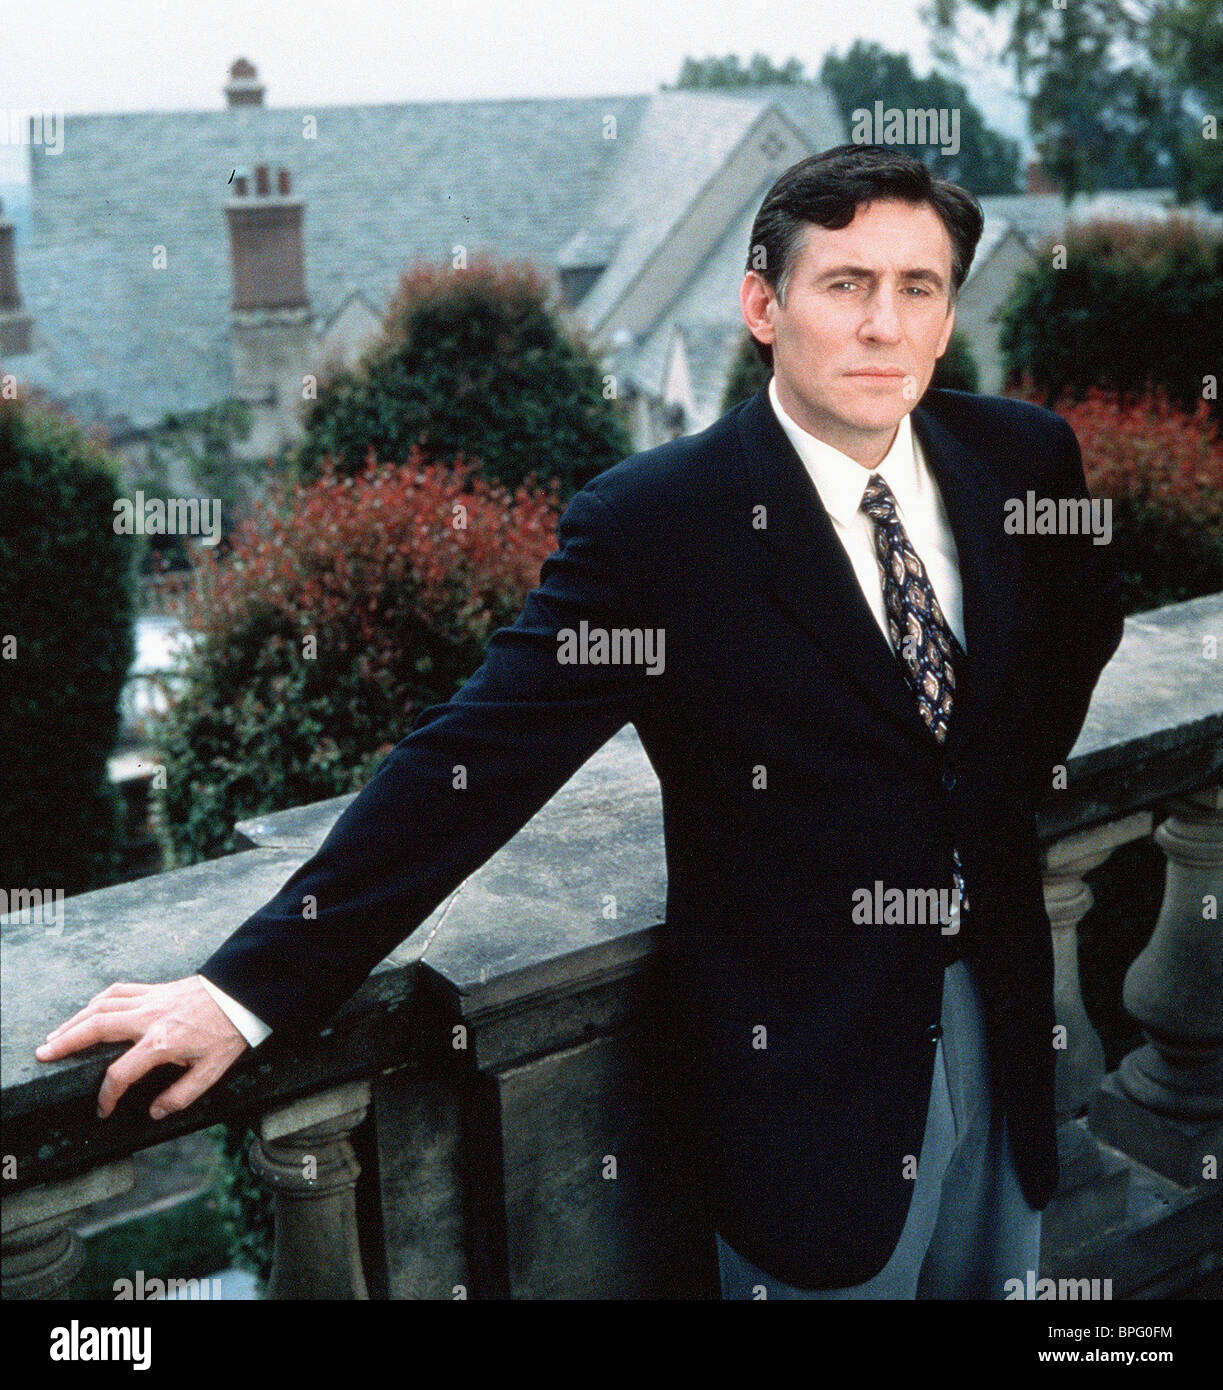 GABRIEL BYRNE WEAPONS OF MASS DISTRACTION; (1997) - Stock Image